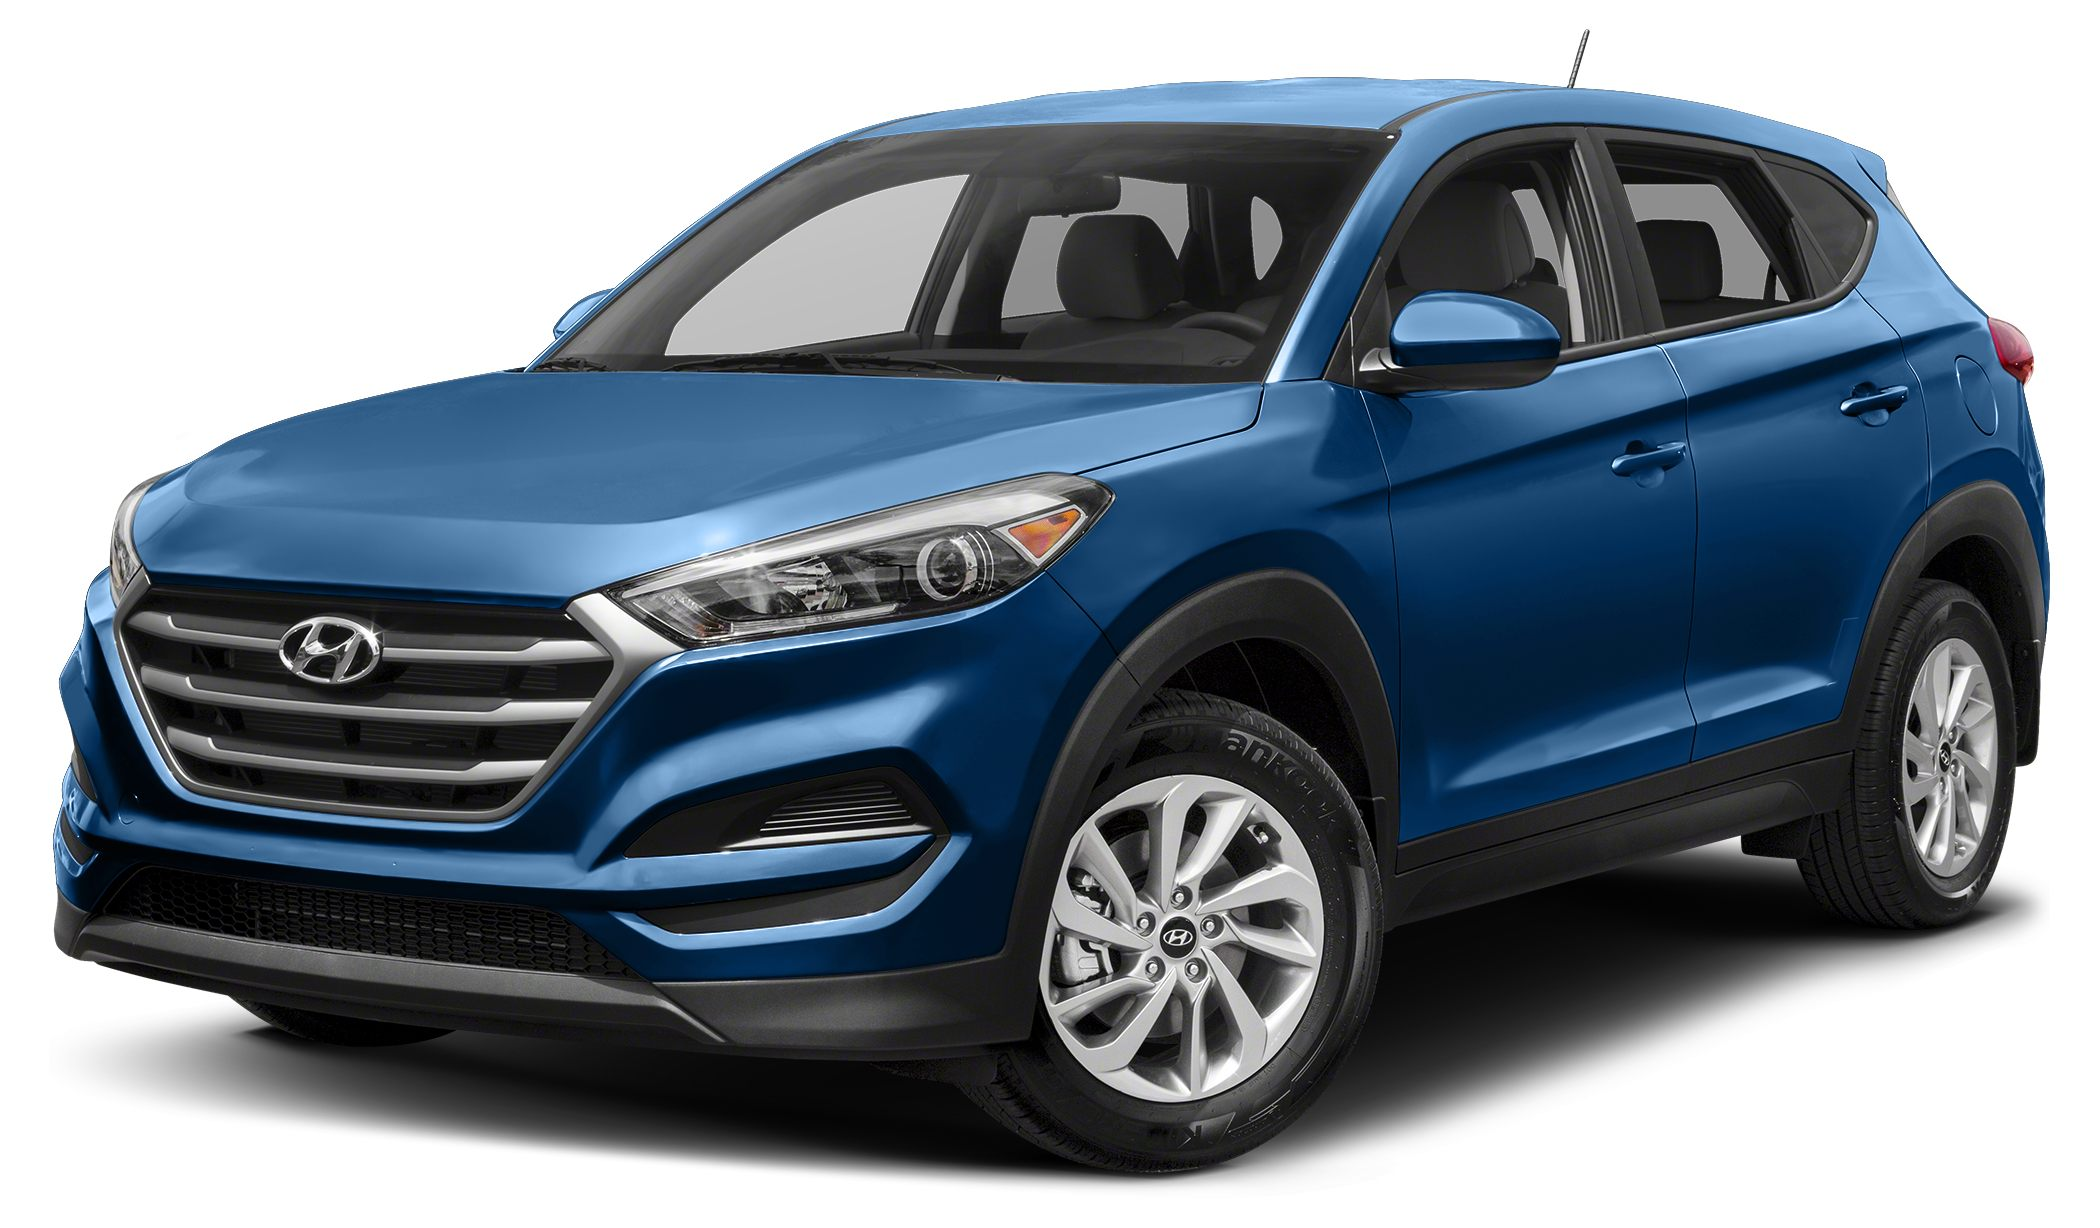 2017 Hyundai Tucson Eco New Arrival -Great Gas Mileage- Bluetooth Great looking Venetian Red Me